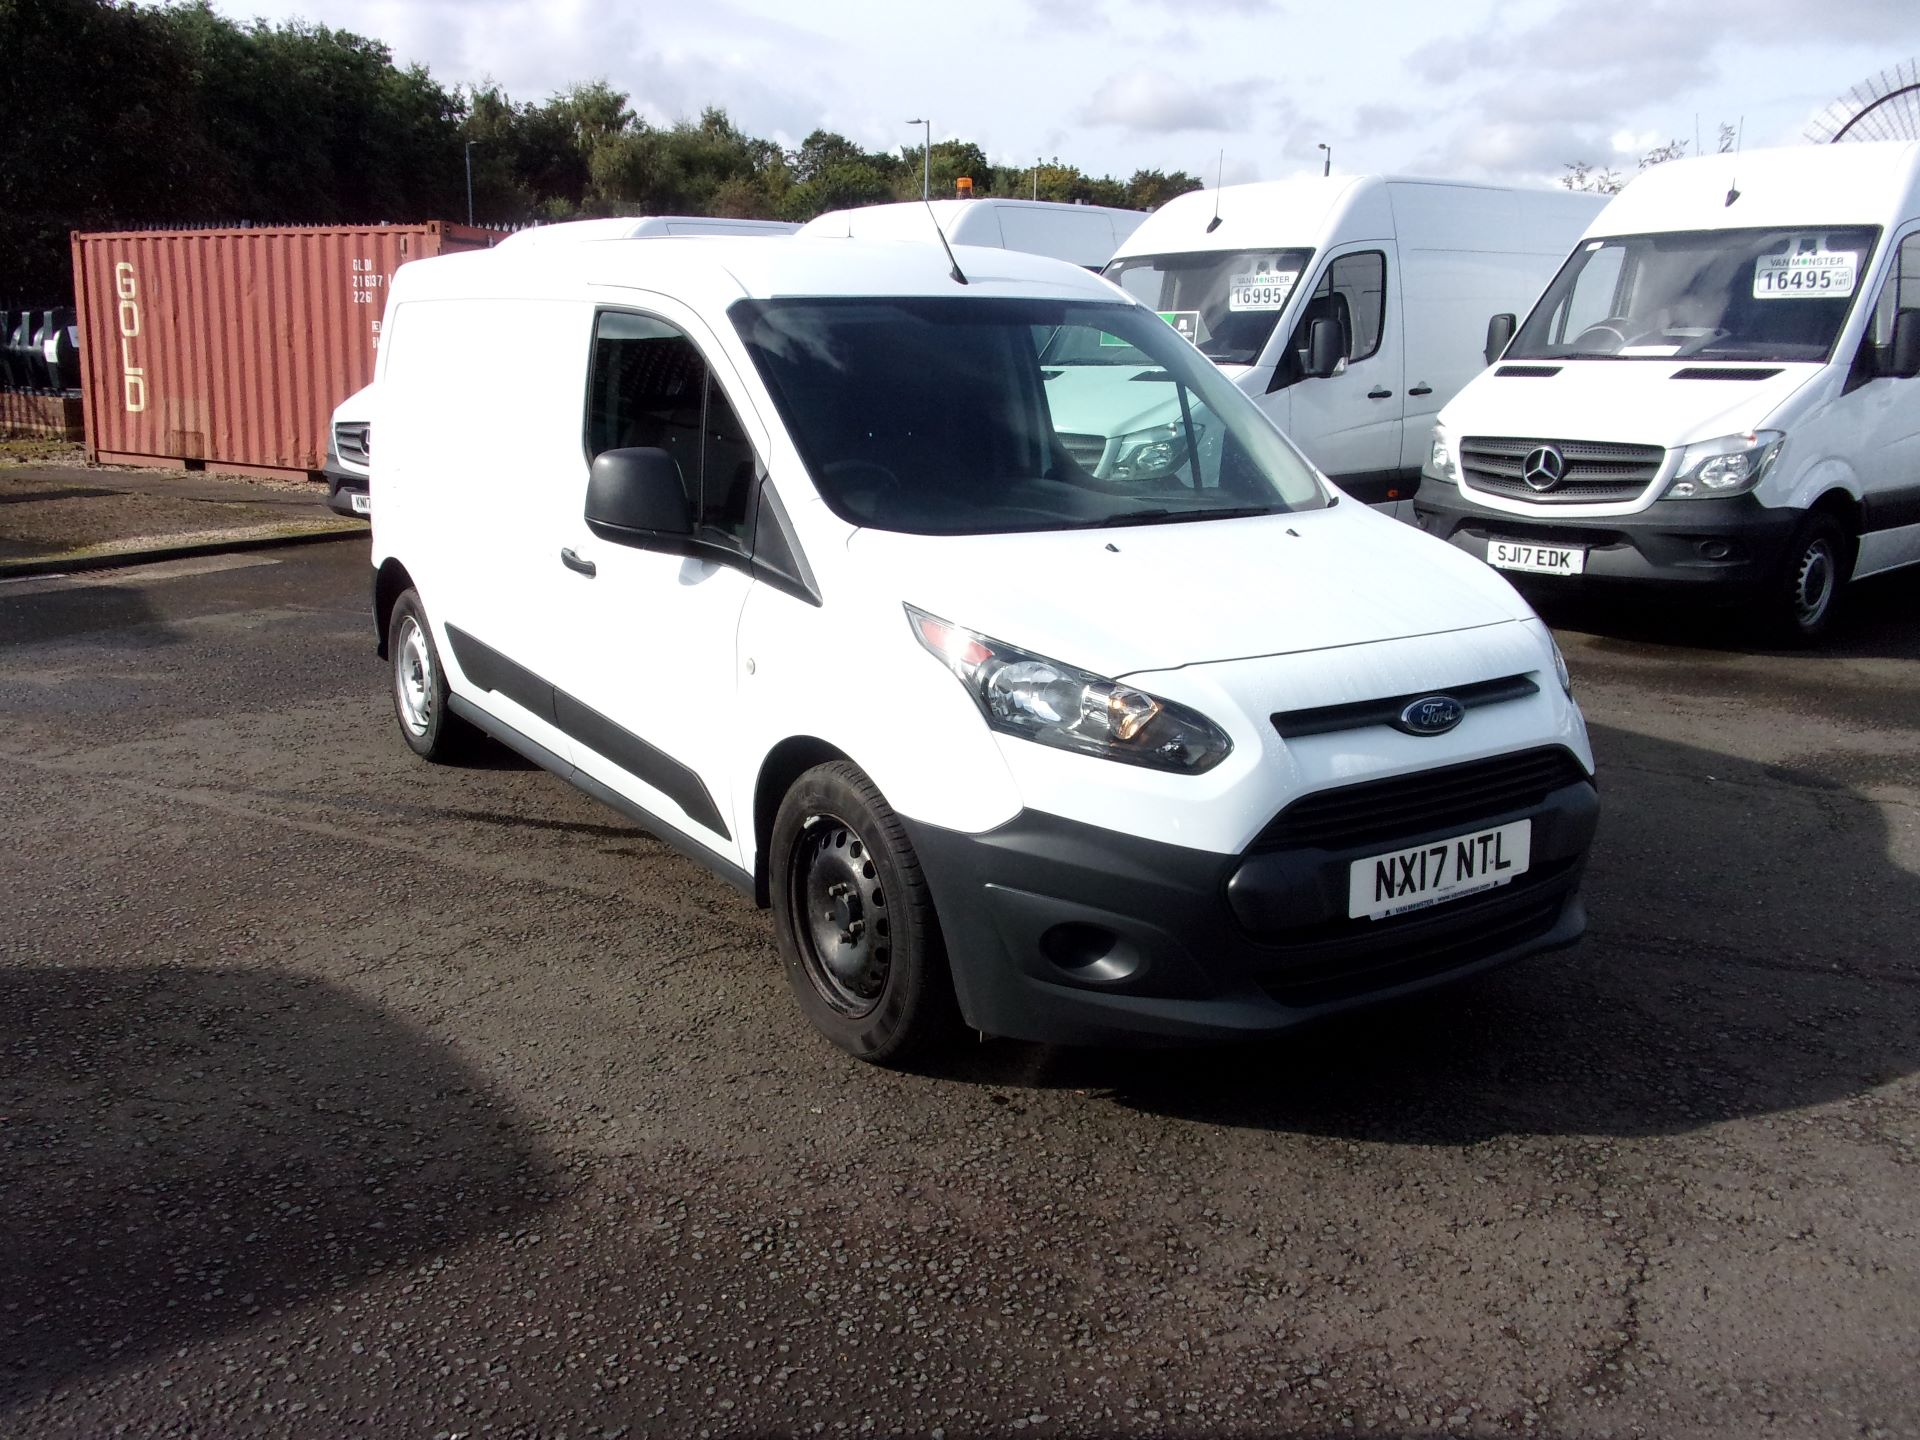 2017 Ford Transit Connect 210 L2 DIESEL 1.5 TDCI 75PS EURO 5 (NX17NTL)